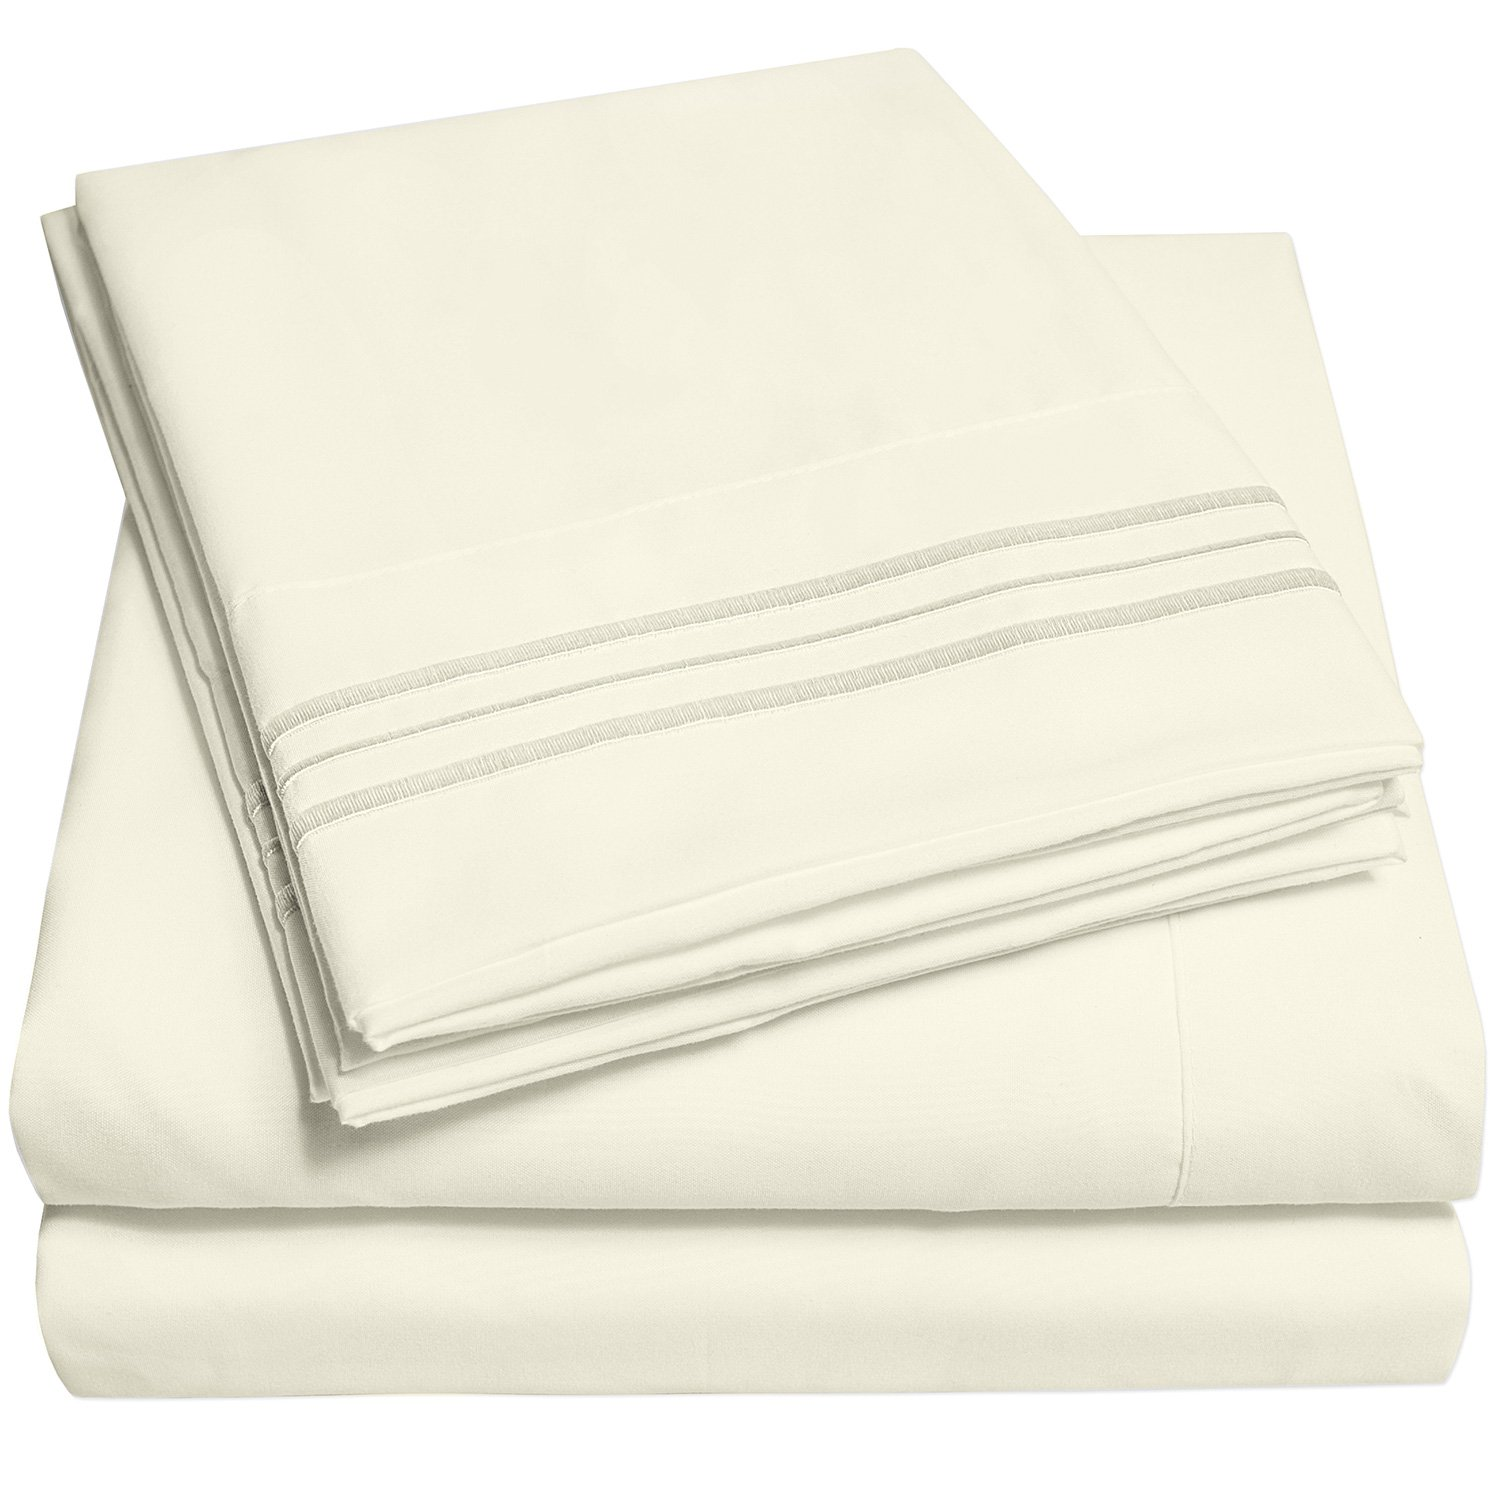 1500 Supreme Collection Extra Soft Split King Sheets Set, Ivory - Luxury Bed Sheets Set With Deep Pocket Wrinkle Free Hypoallergenic Bedding, Over 40 Colors, Split King Size, Ivory